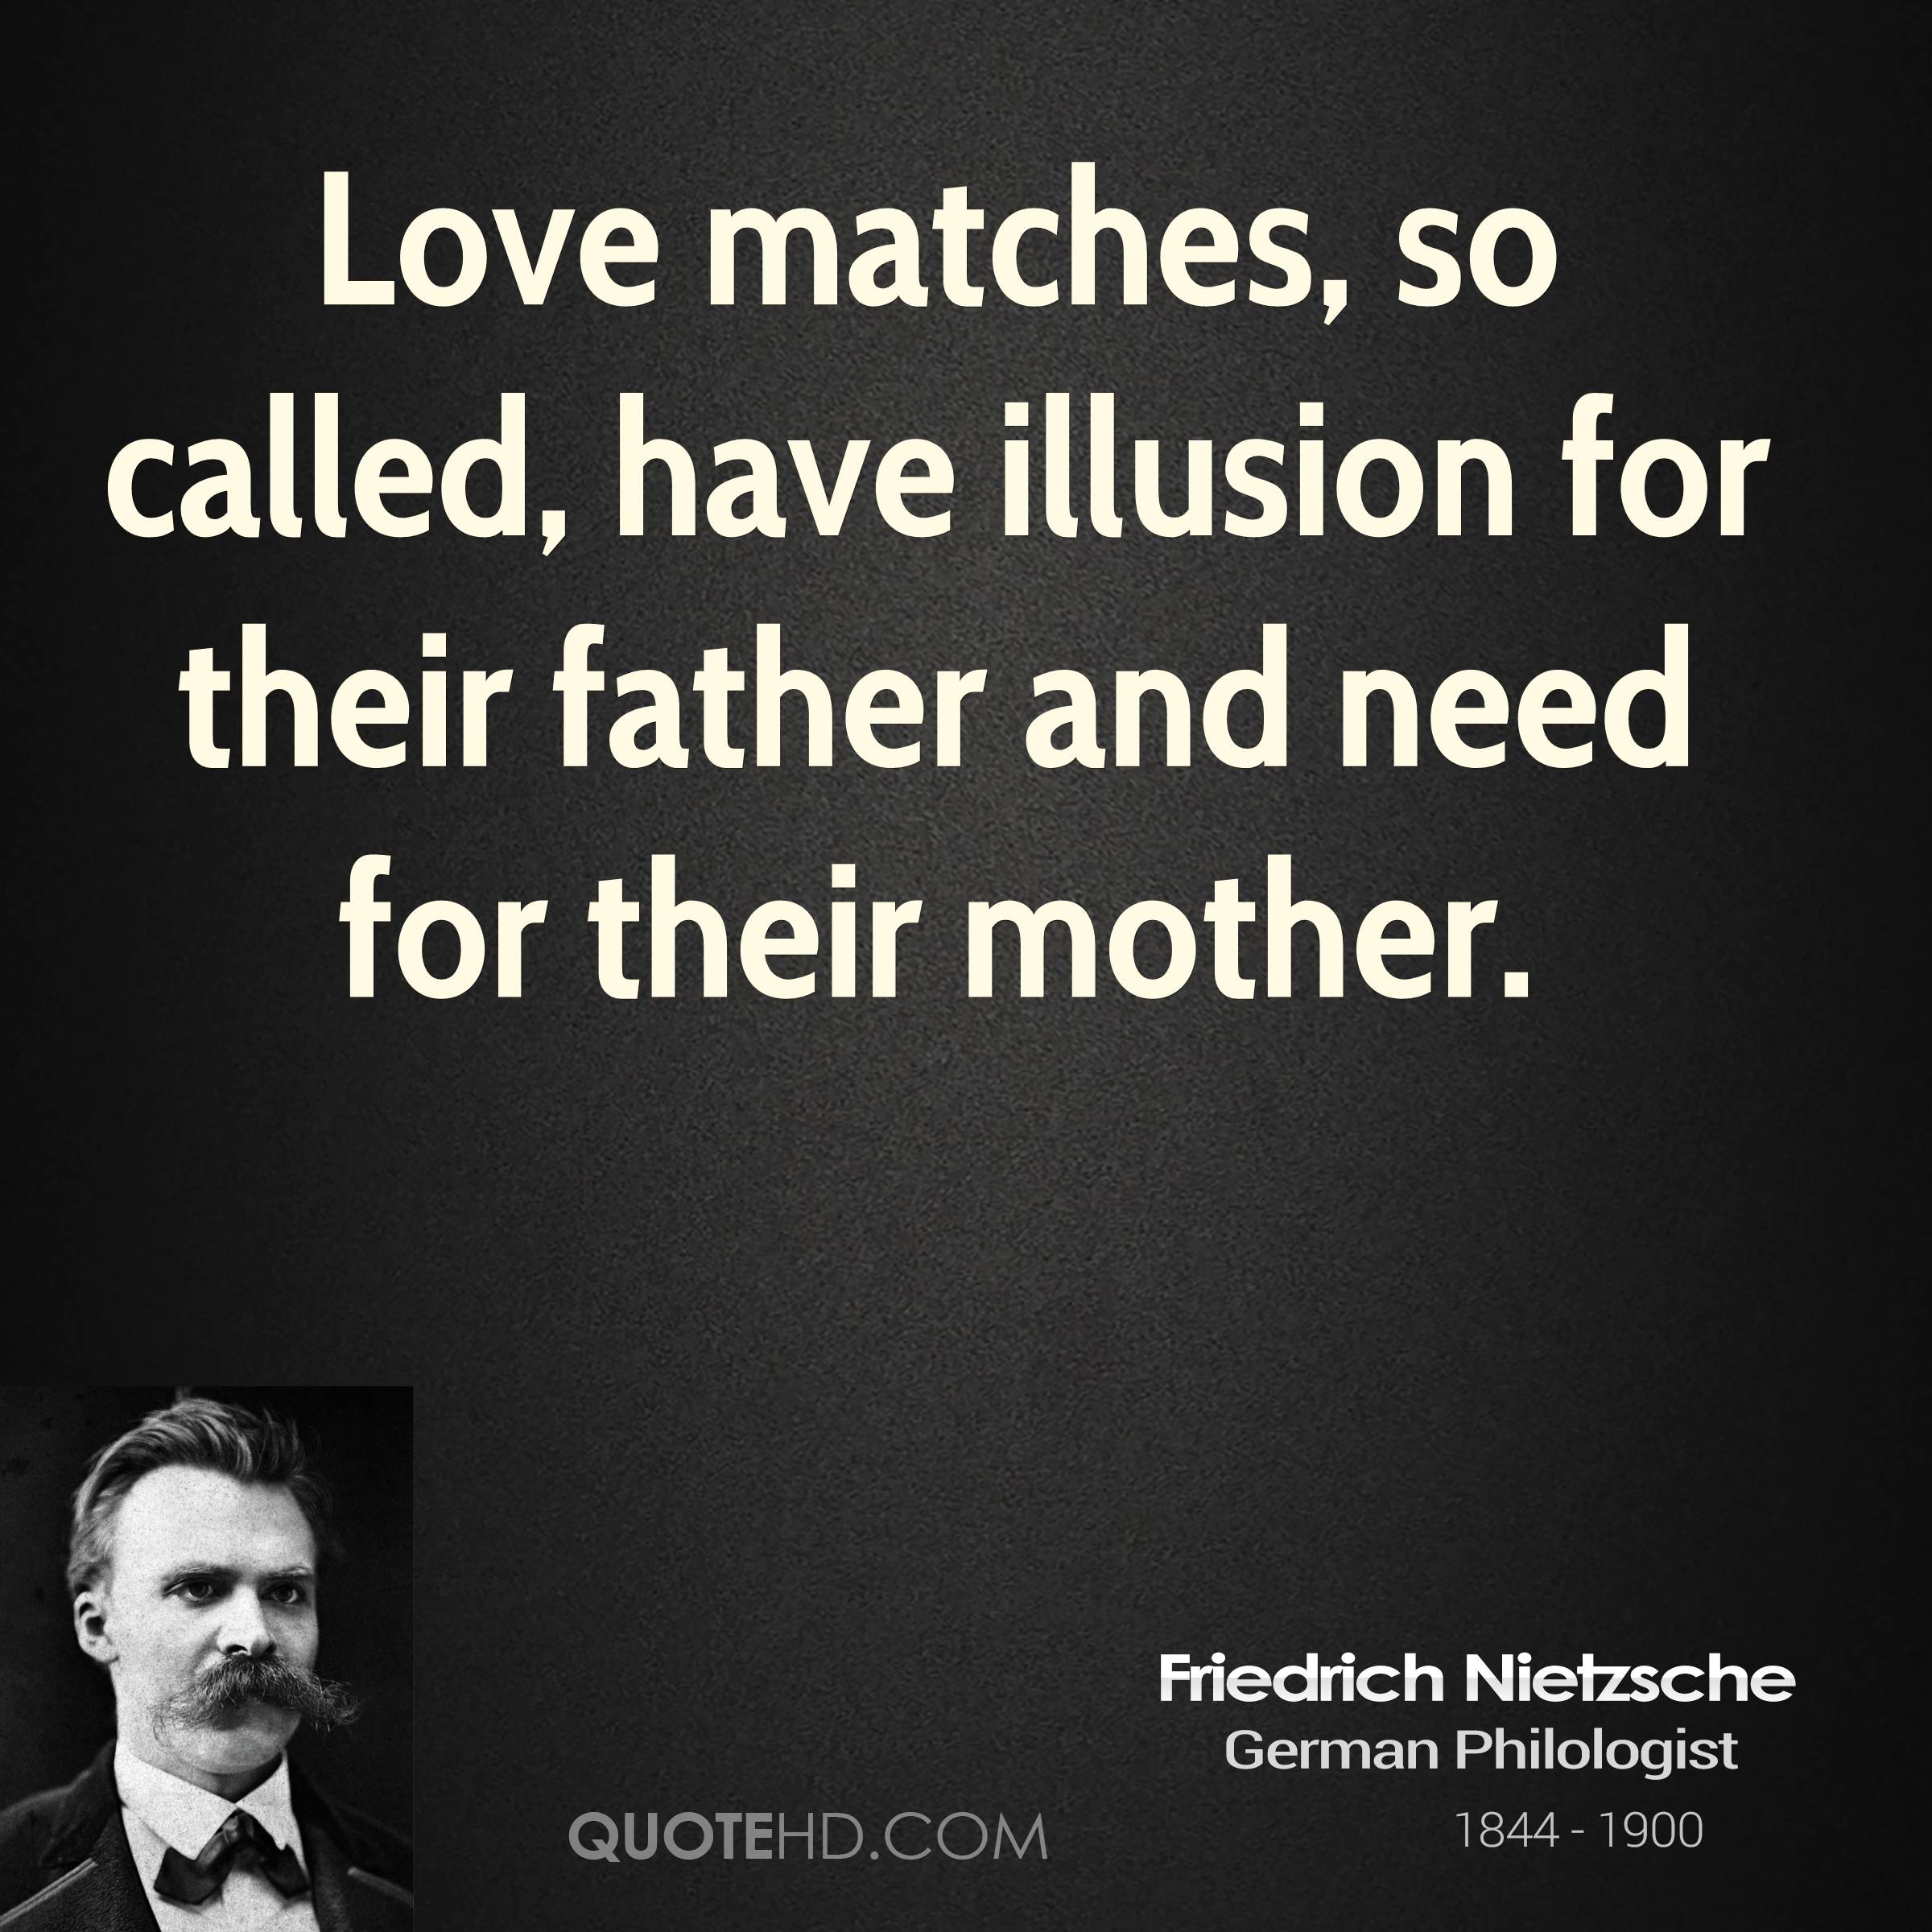 Love matches, so called, have illusion for their father and need for their mother.